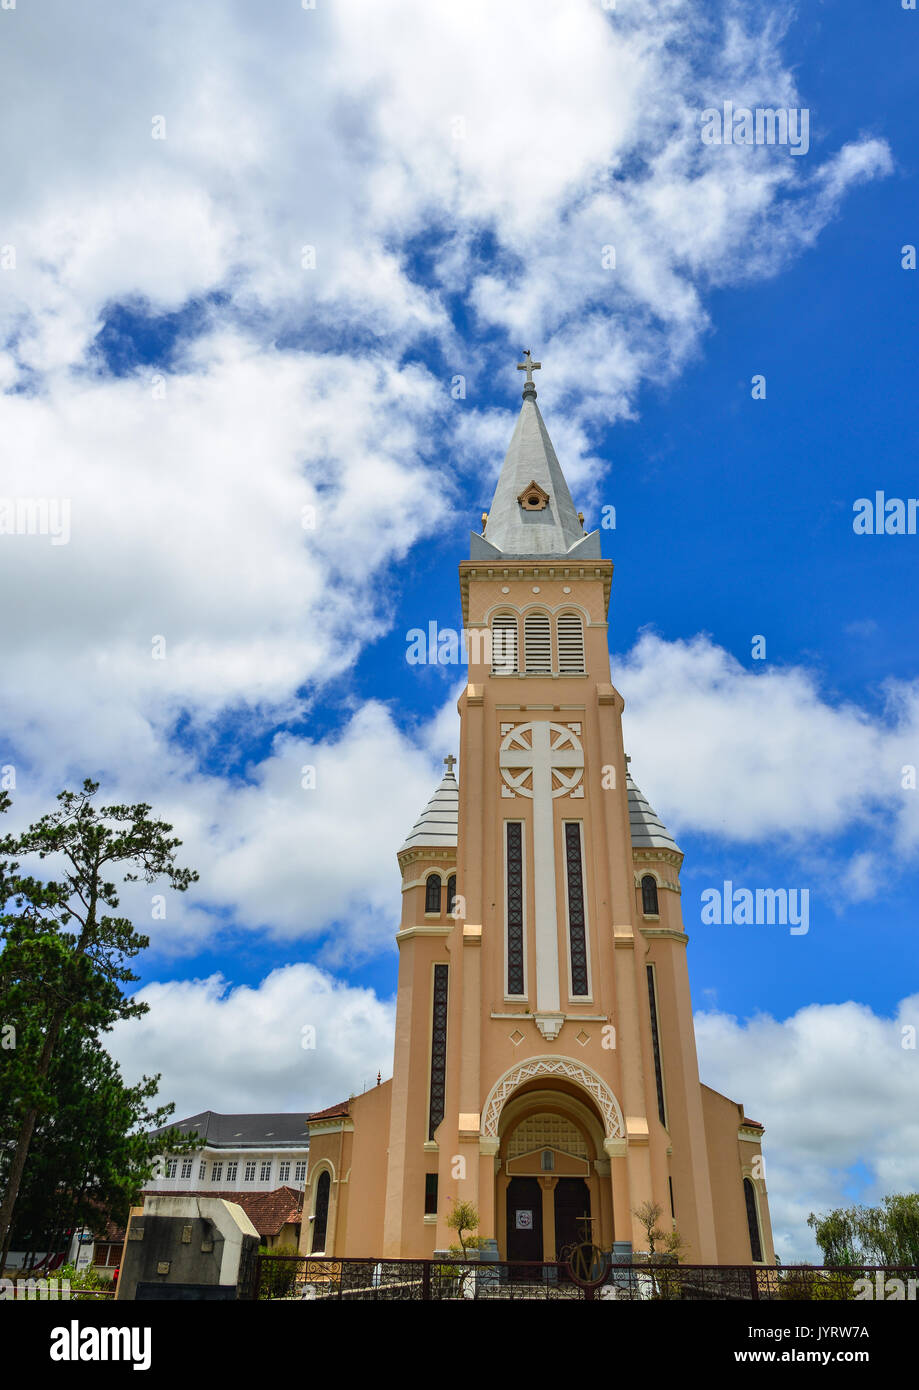 Nicholas of Bari Cathedral (Church of Chicken) in Dalat Vietnam. It is a Roman Catholic cathedral seat of the diocese of Da Lat suffragan of the Archd - Stock Image